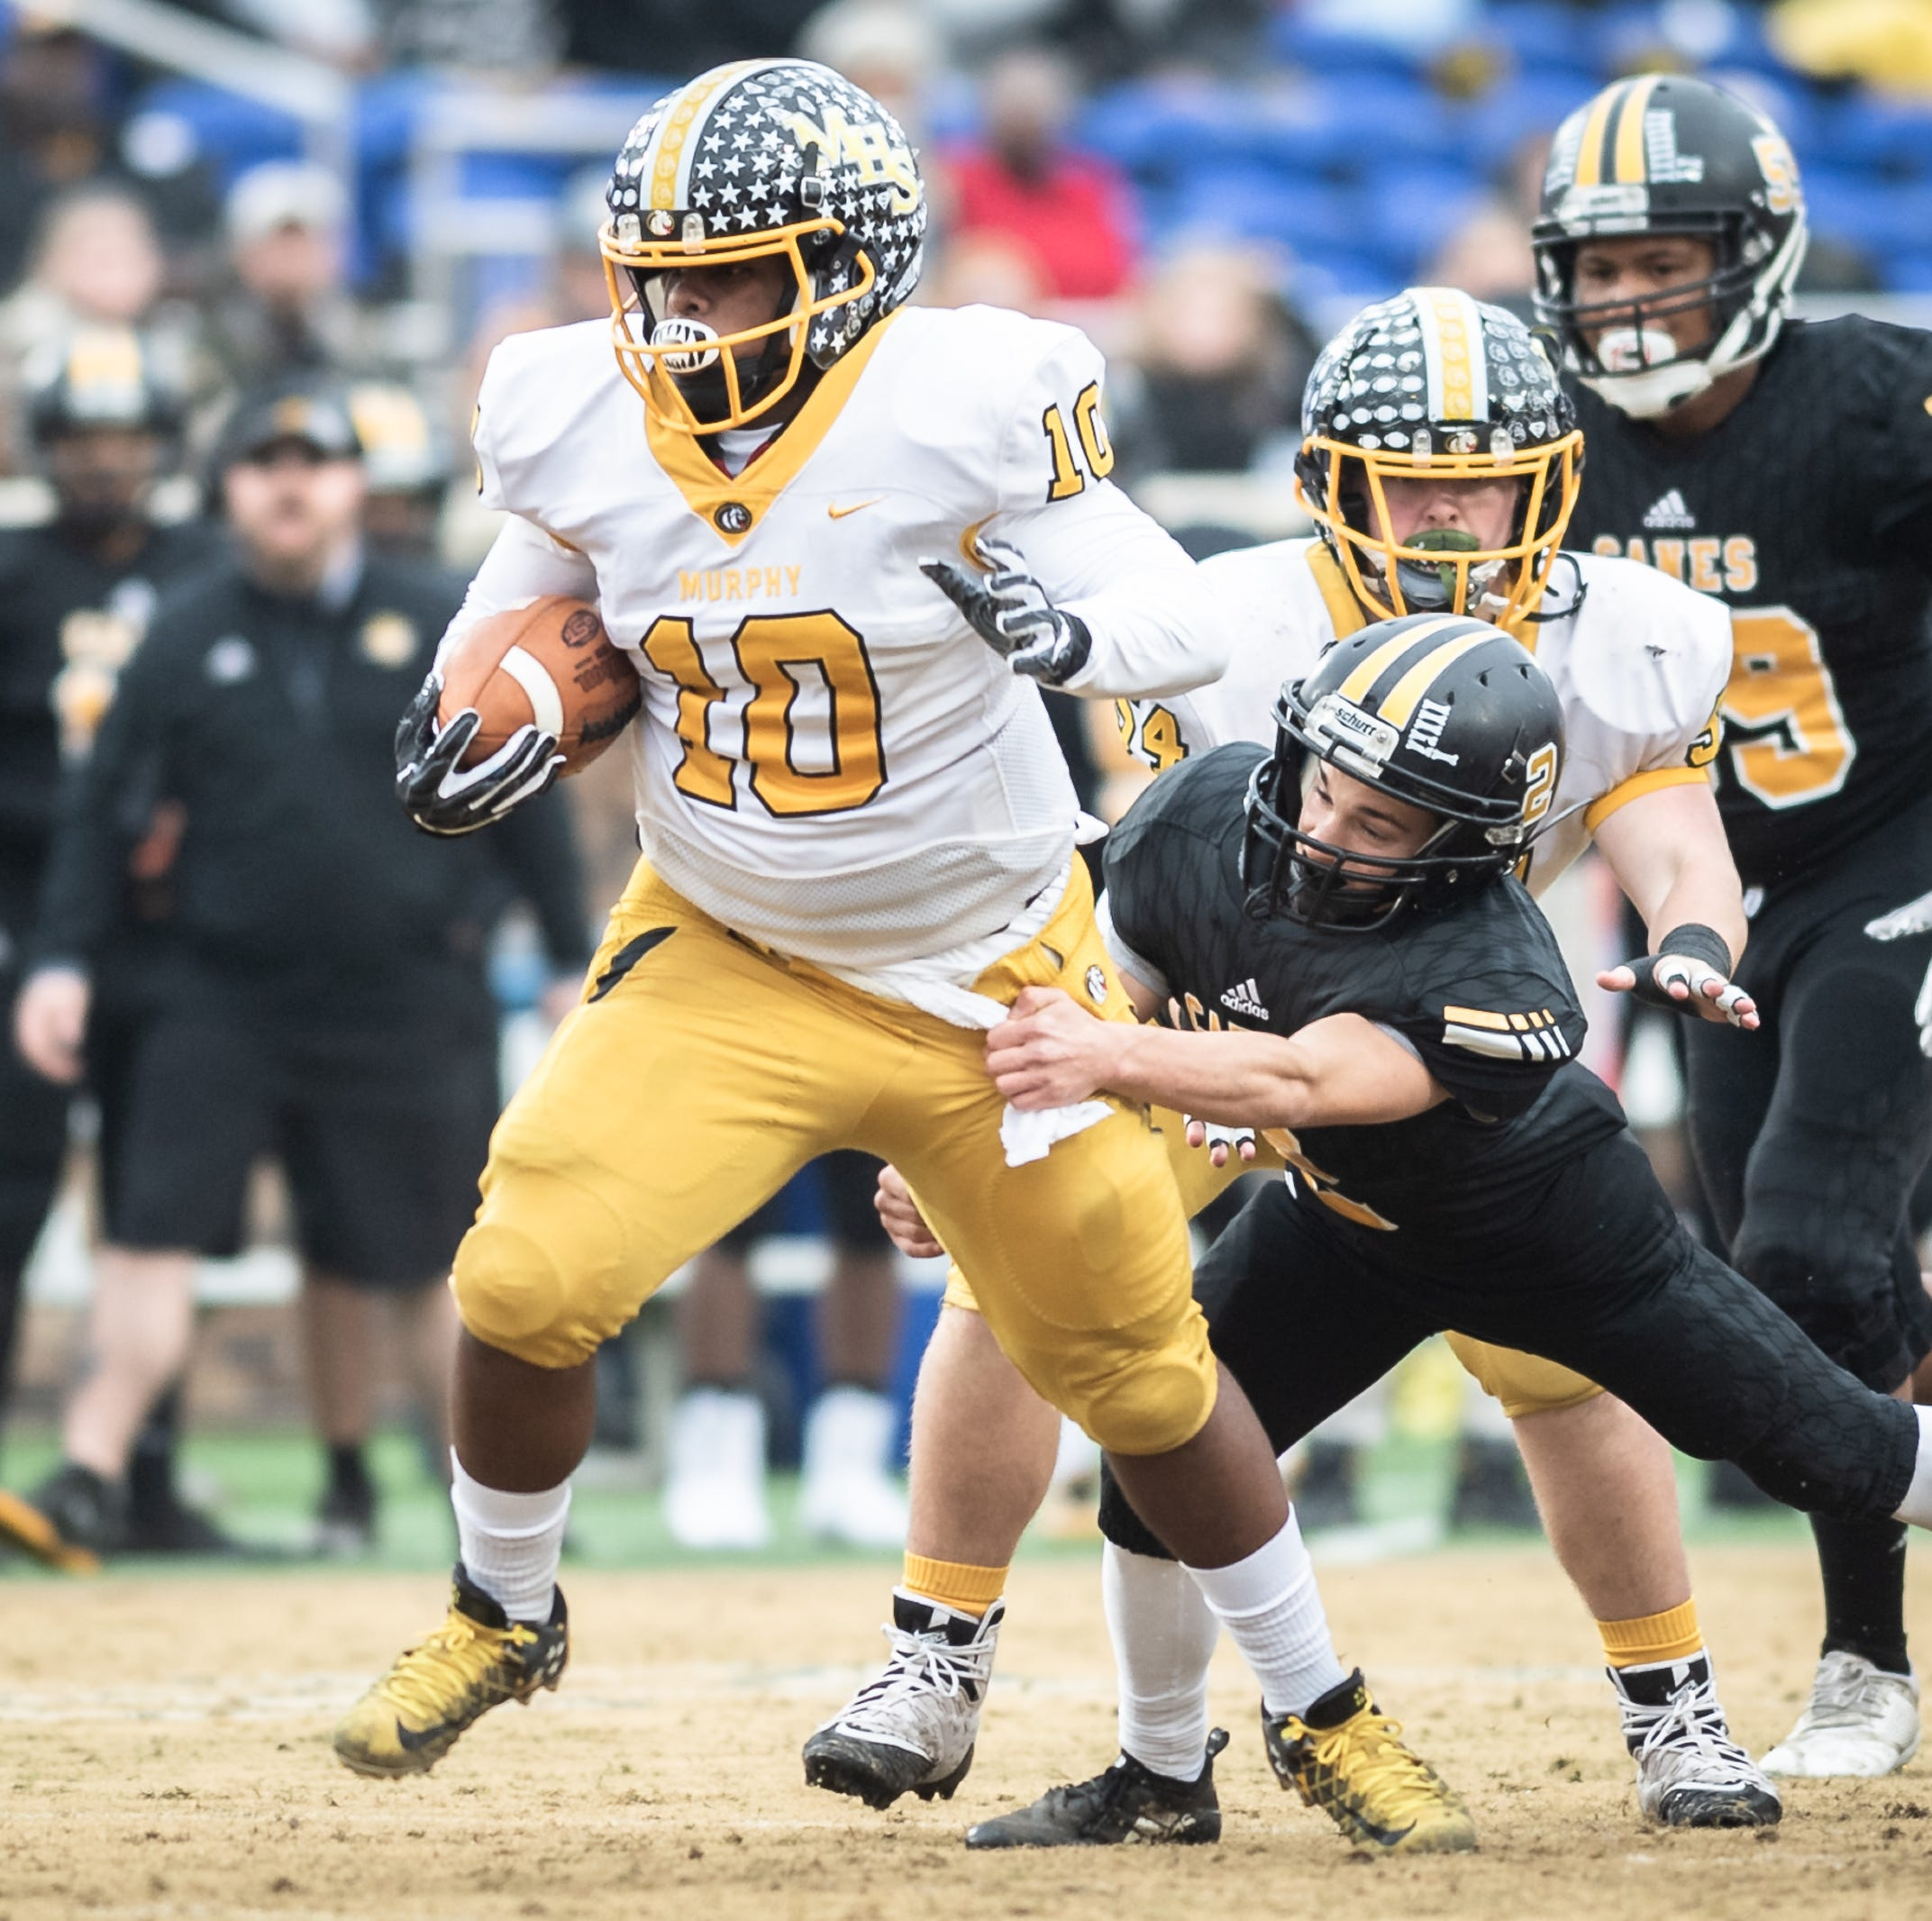 Murphy wins ninth state title with rout of Pamlico County